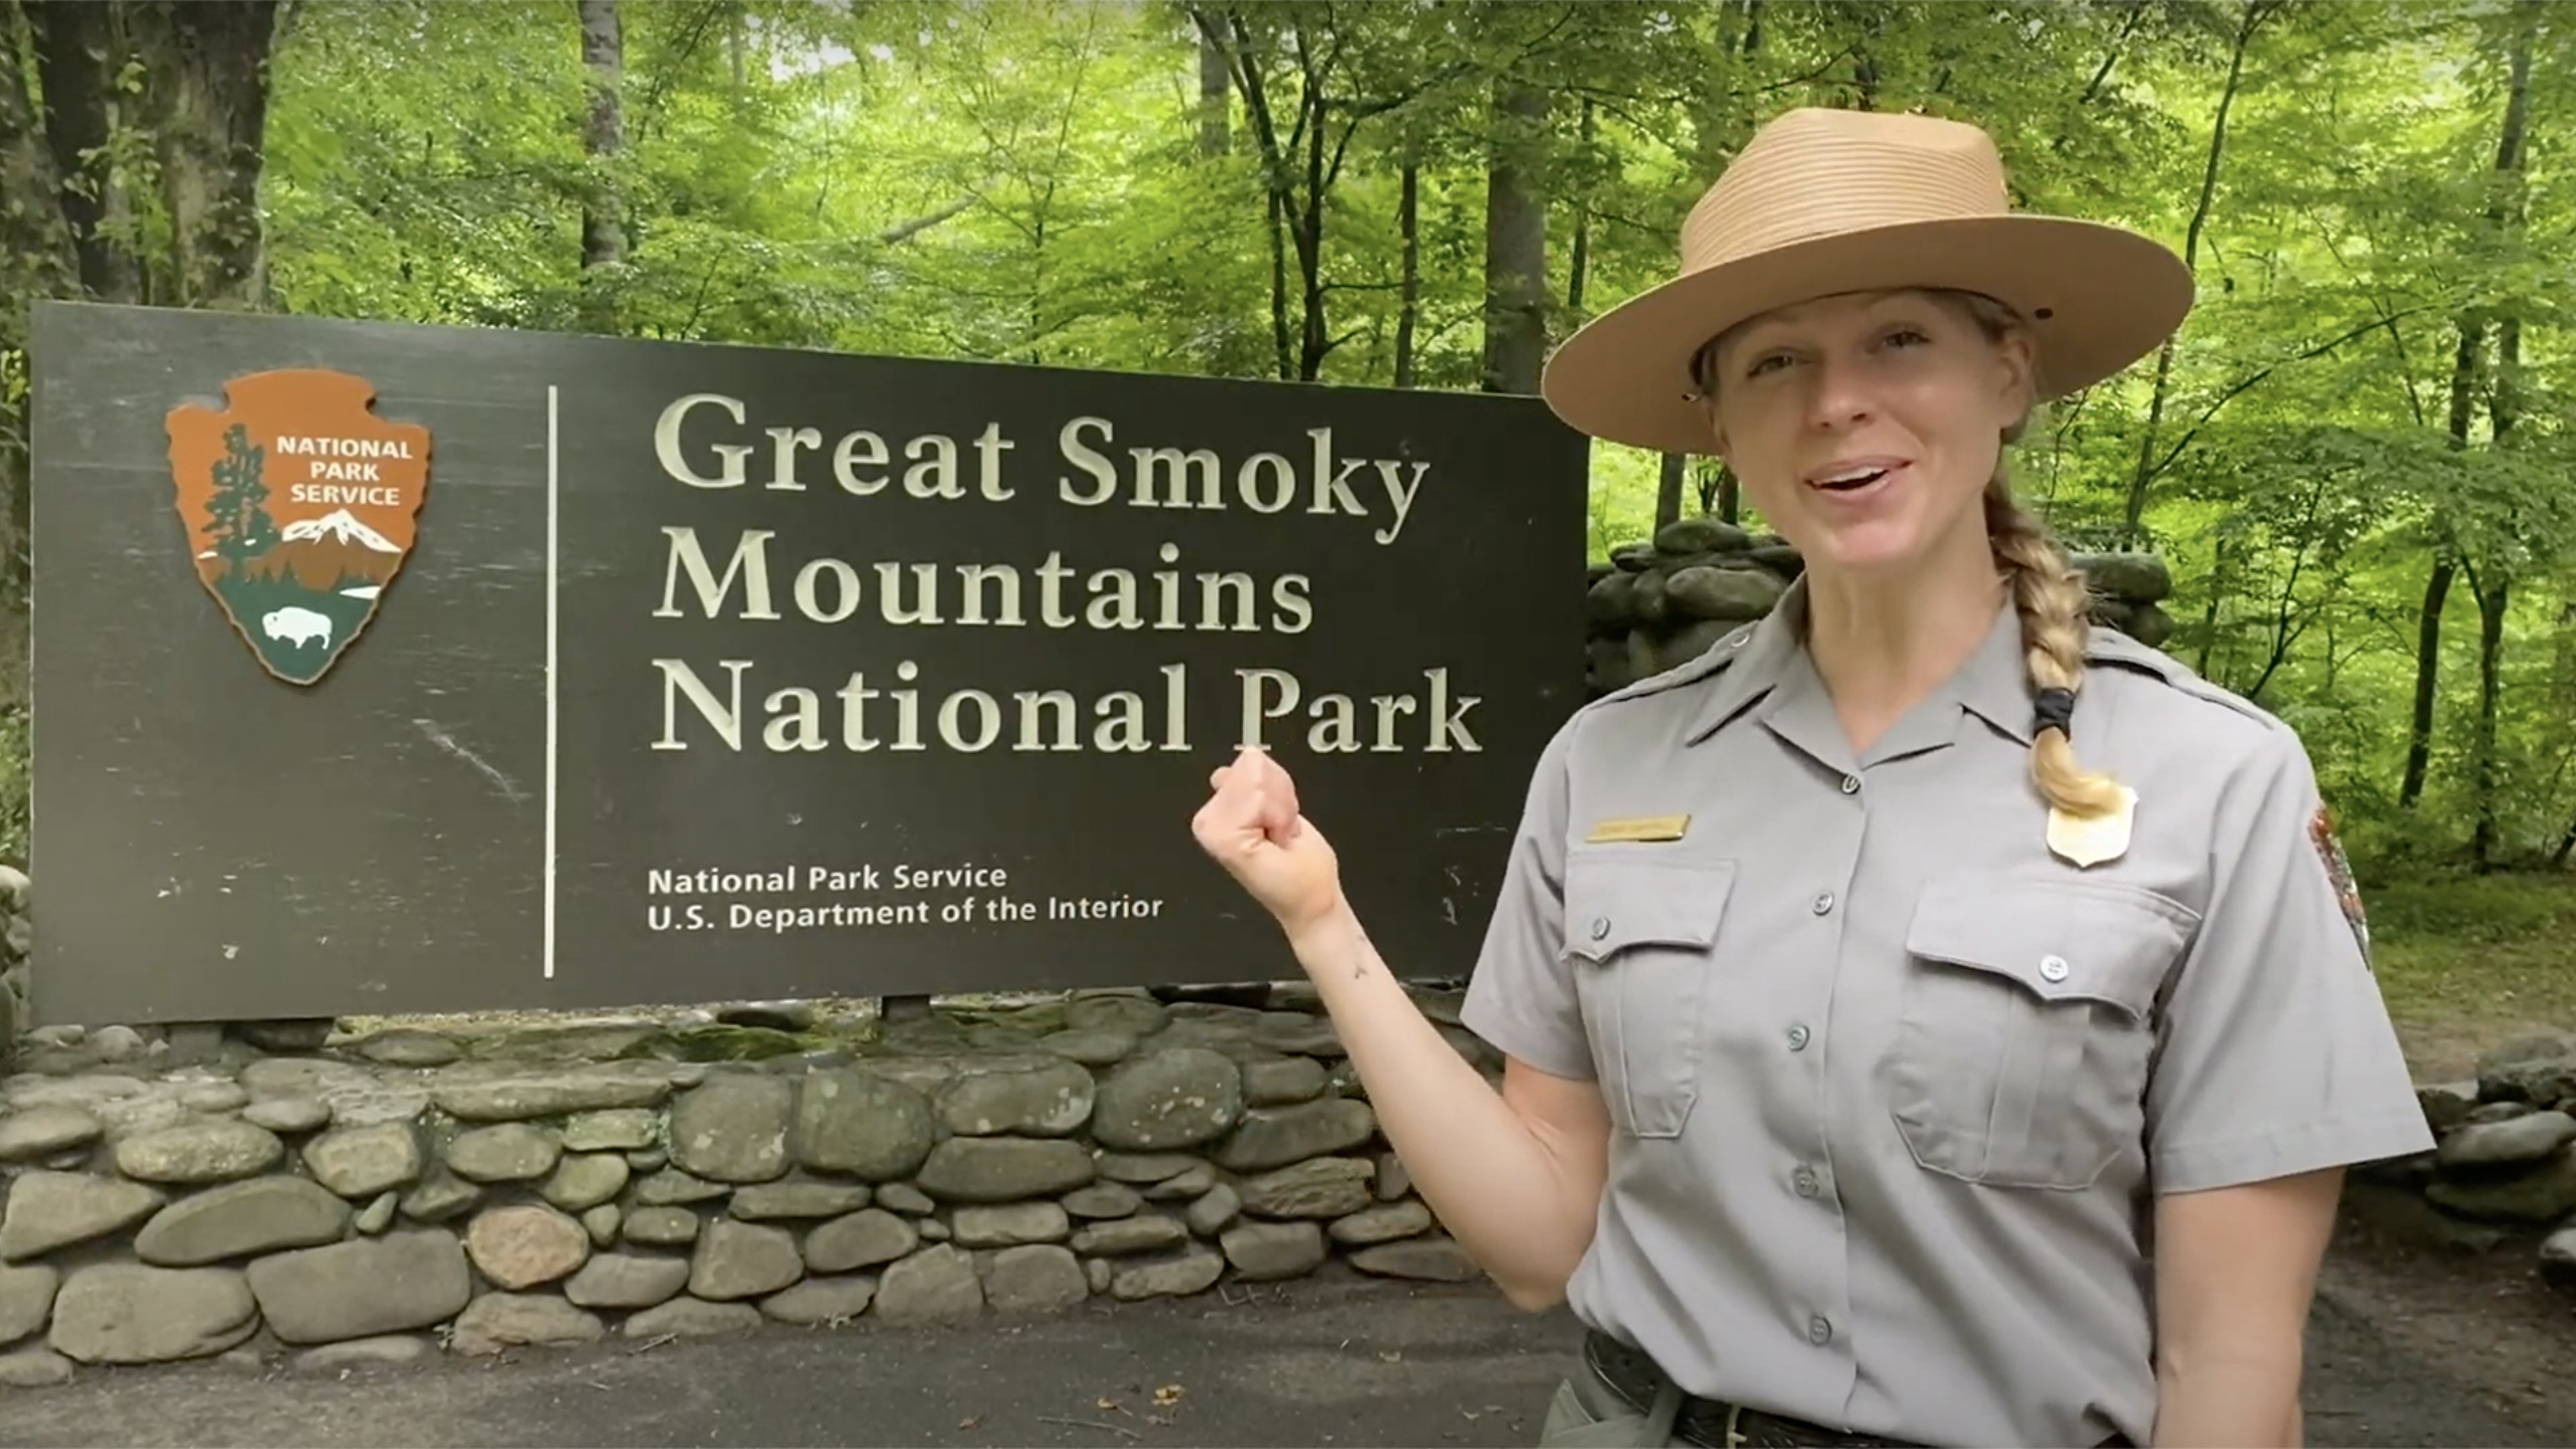 A ranger stands in front of the entrance sign to Great Smoky Mountains National Park